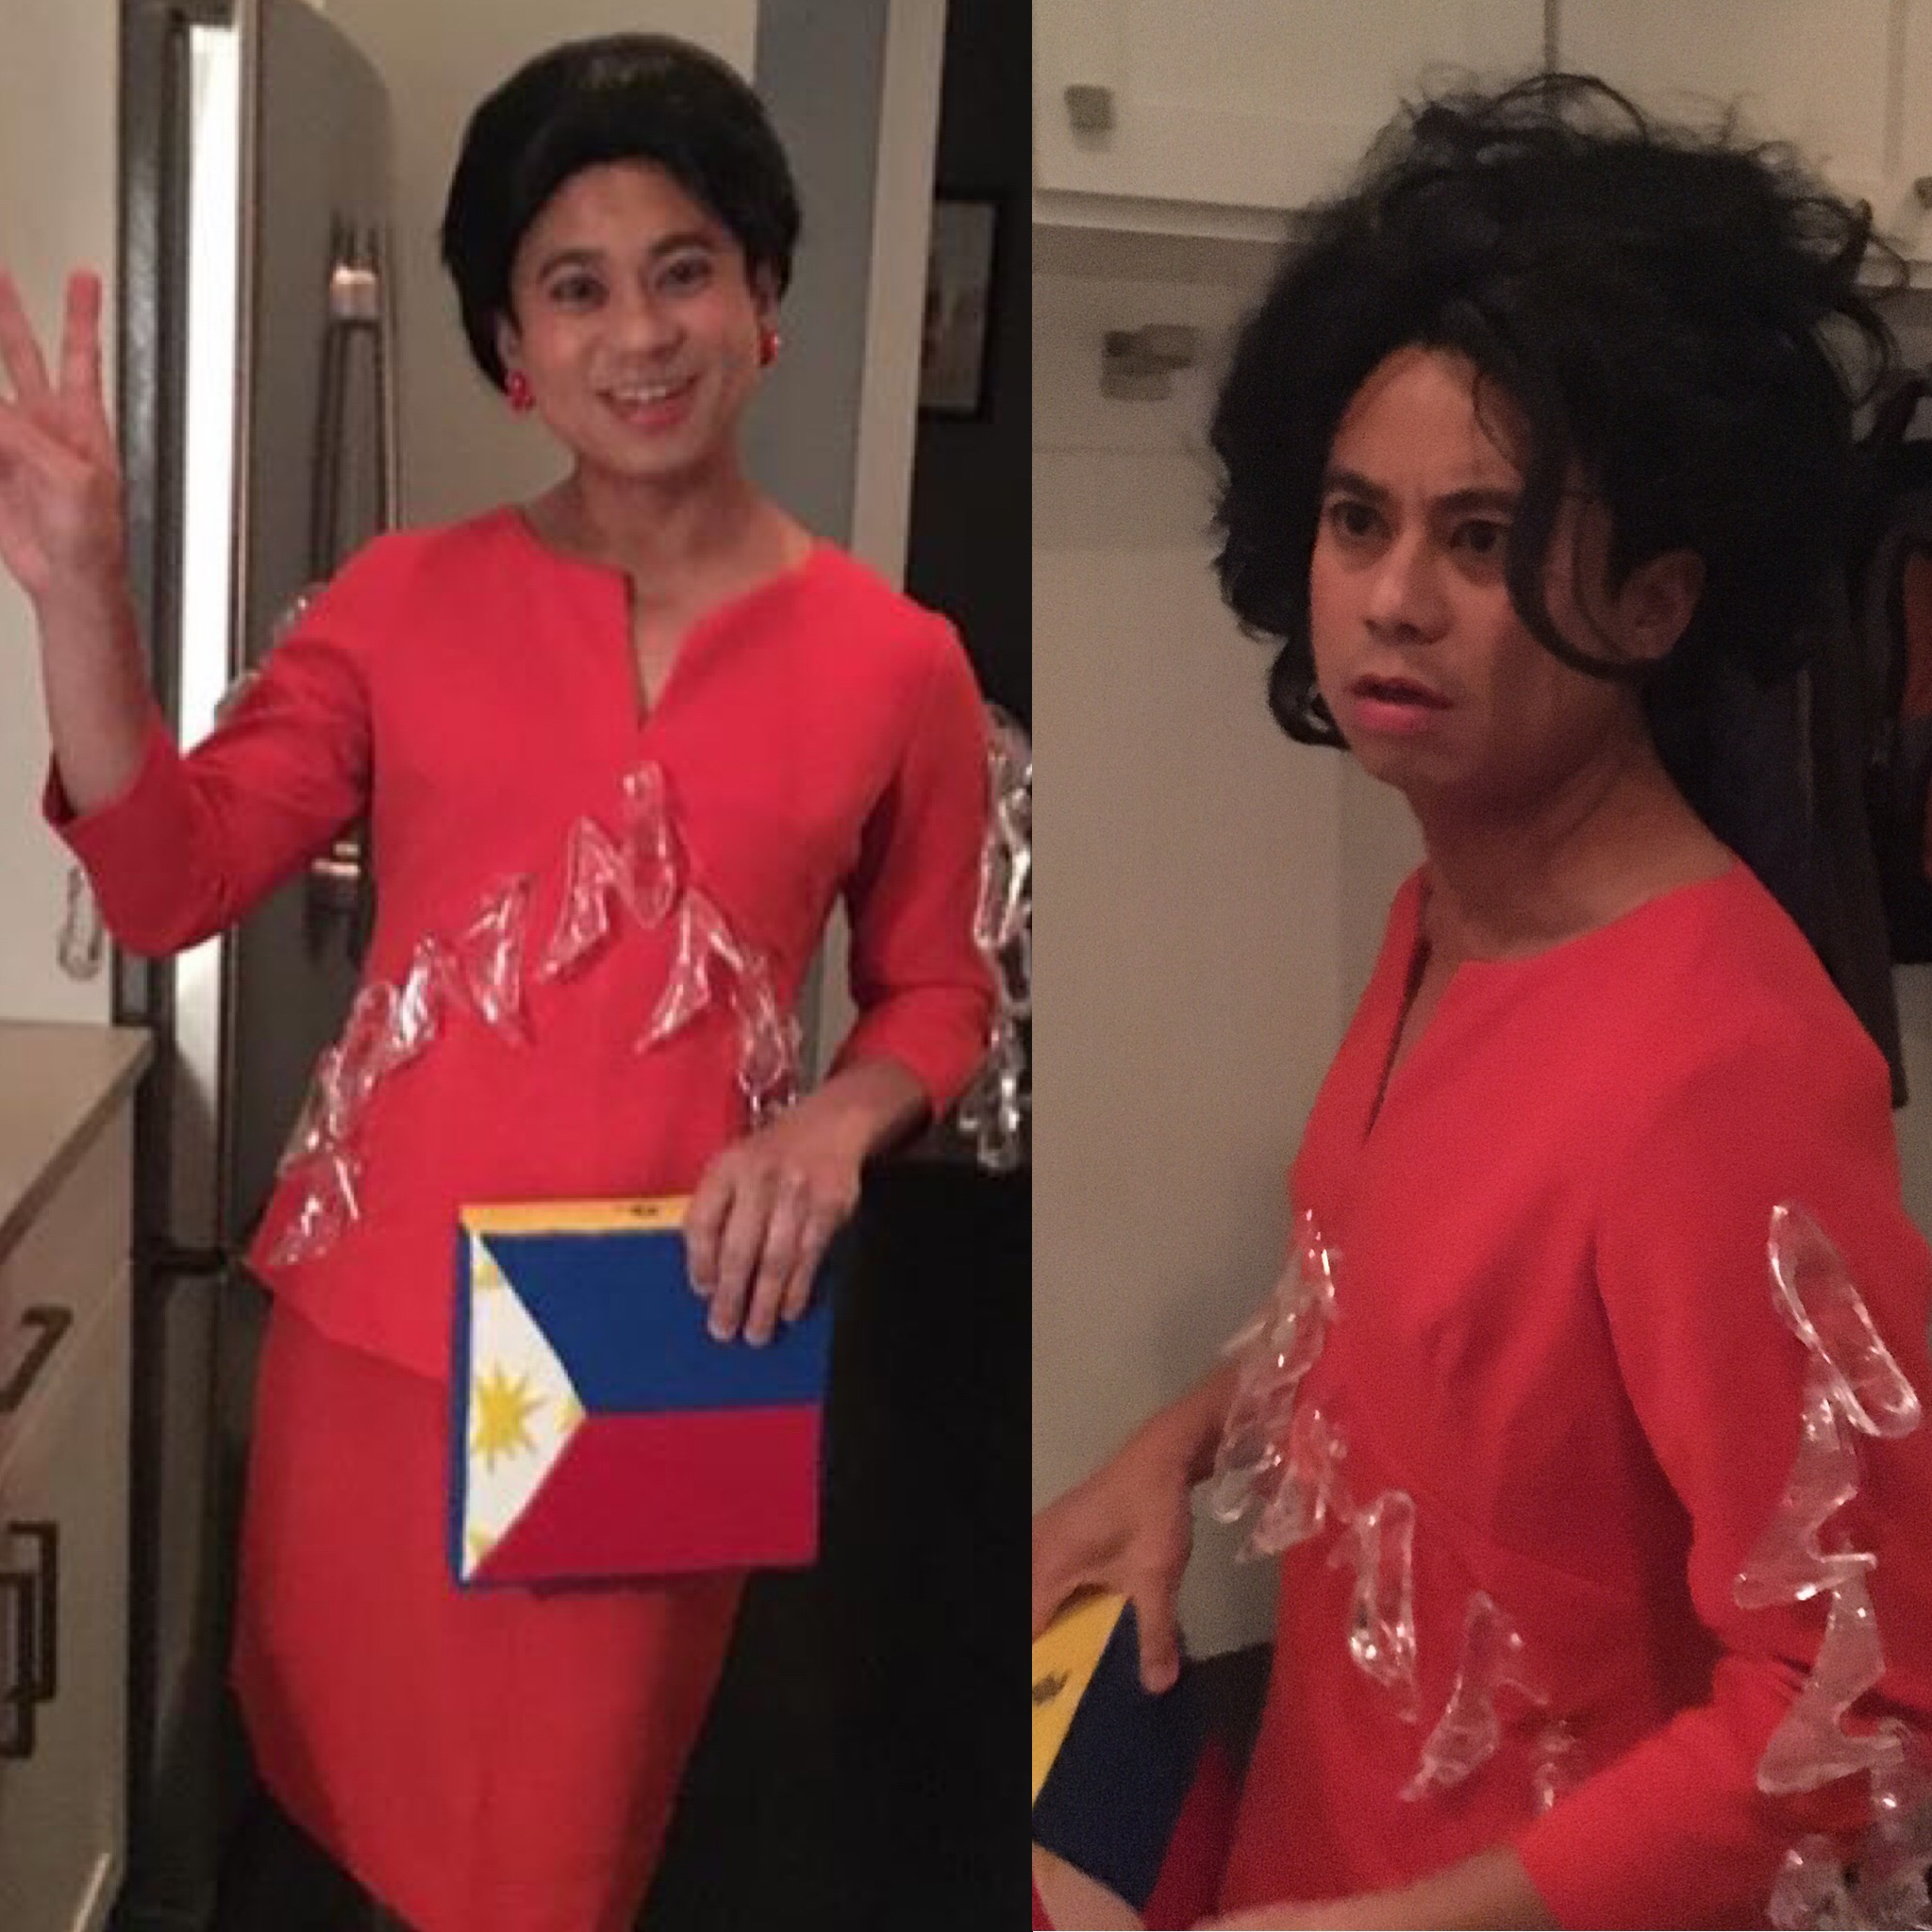 Hot Seater Alvin dela Cruz in drag as Imelda Marcos (#theshoeswerelit), before and after the event